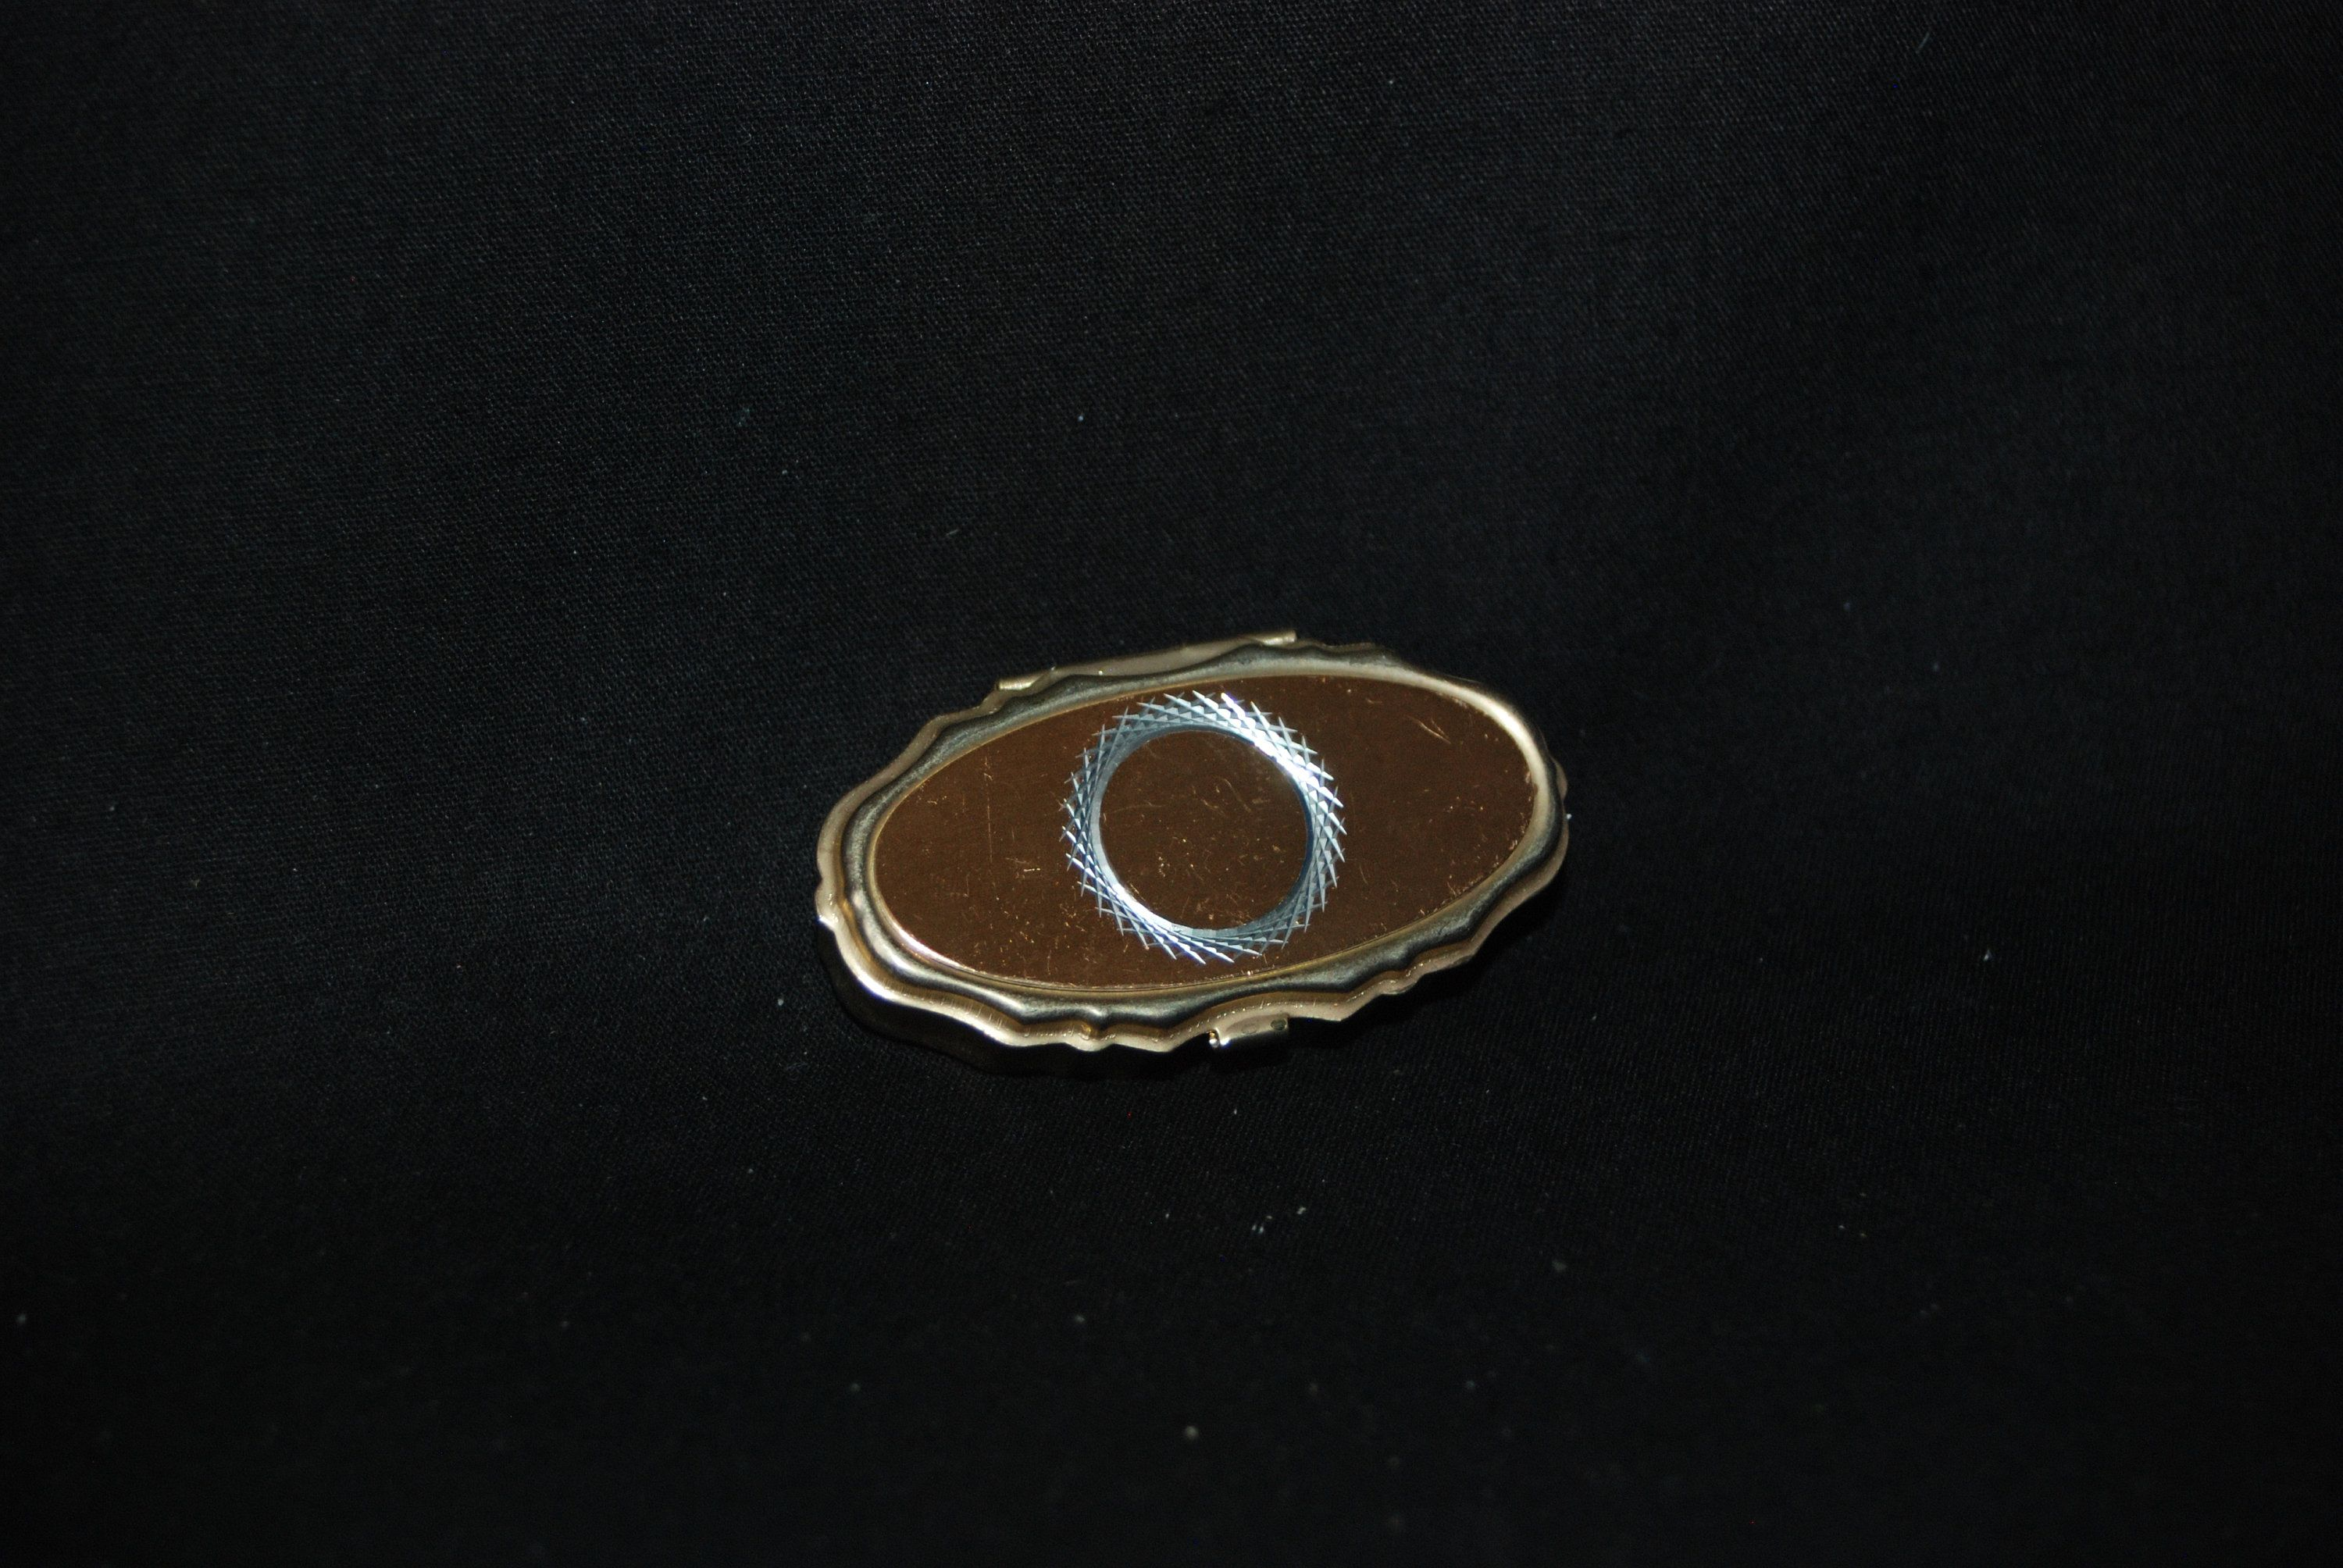 Circle pill box vintage collectible decorative gold colored oval